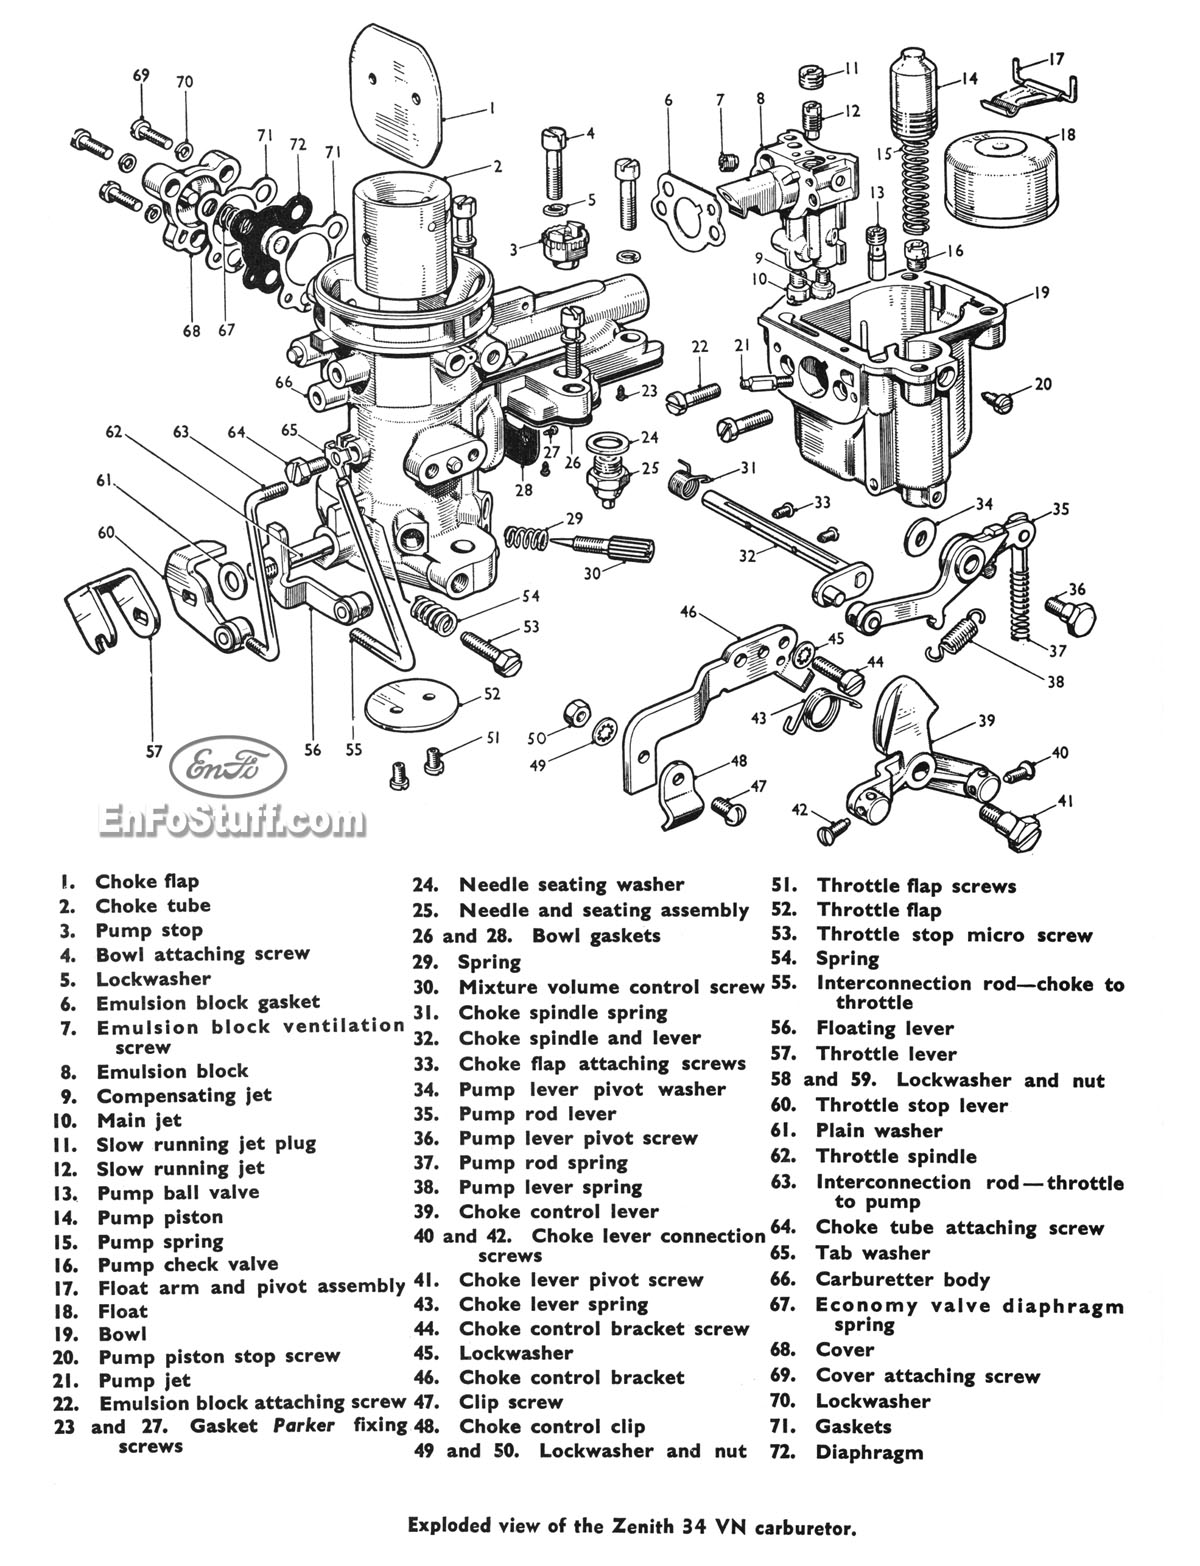 Carburetor Diagram Zenith 34 Vn